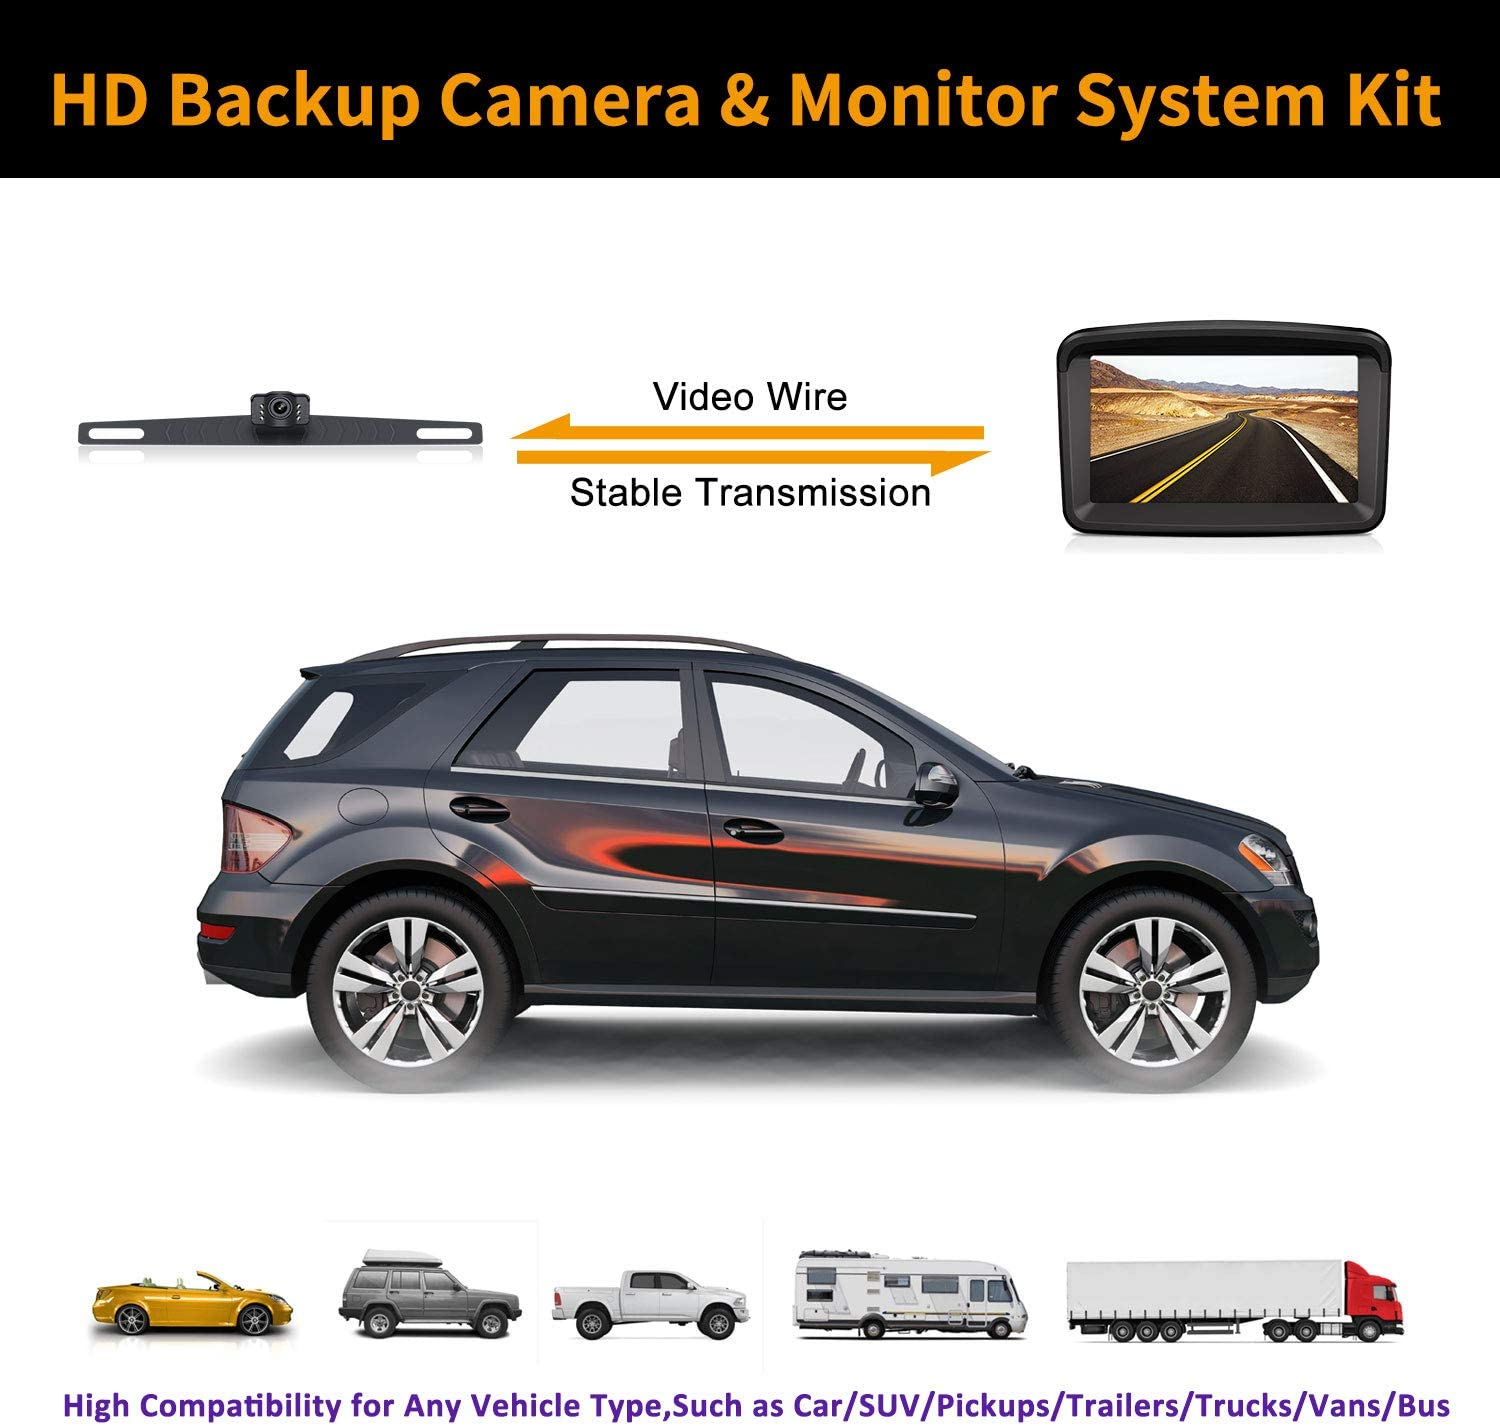 Backup Camera with Monitor License Plate Mounted Digital Reversing observation Camera Night Vision Waterproof Rear View for 5 LCD Monitor be Used for Safety Driving of Vans,Trucks,Camping Cars,RVs,et